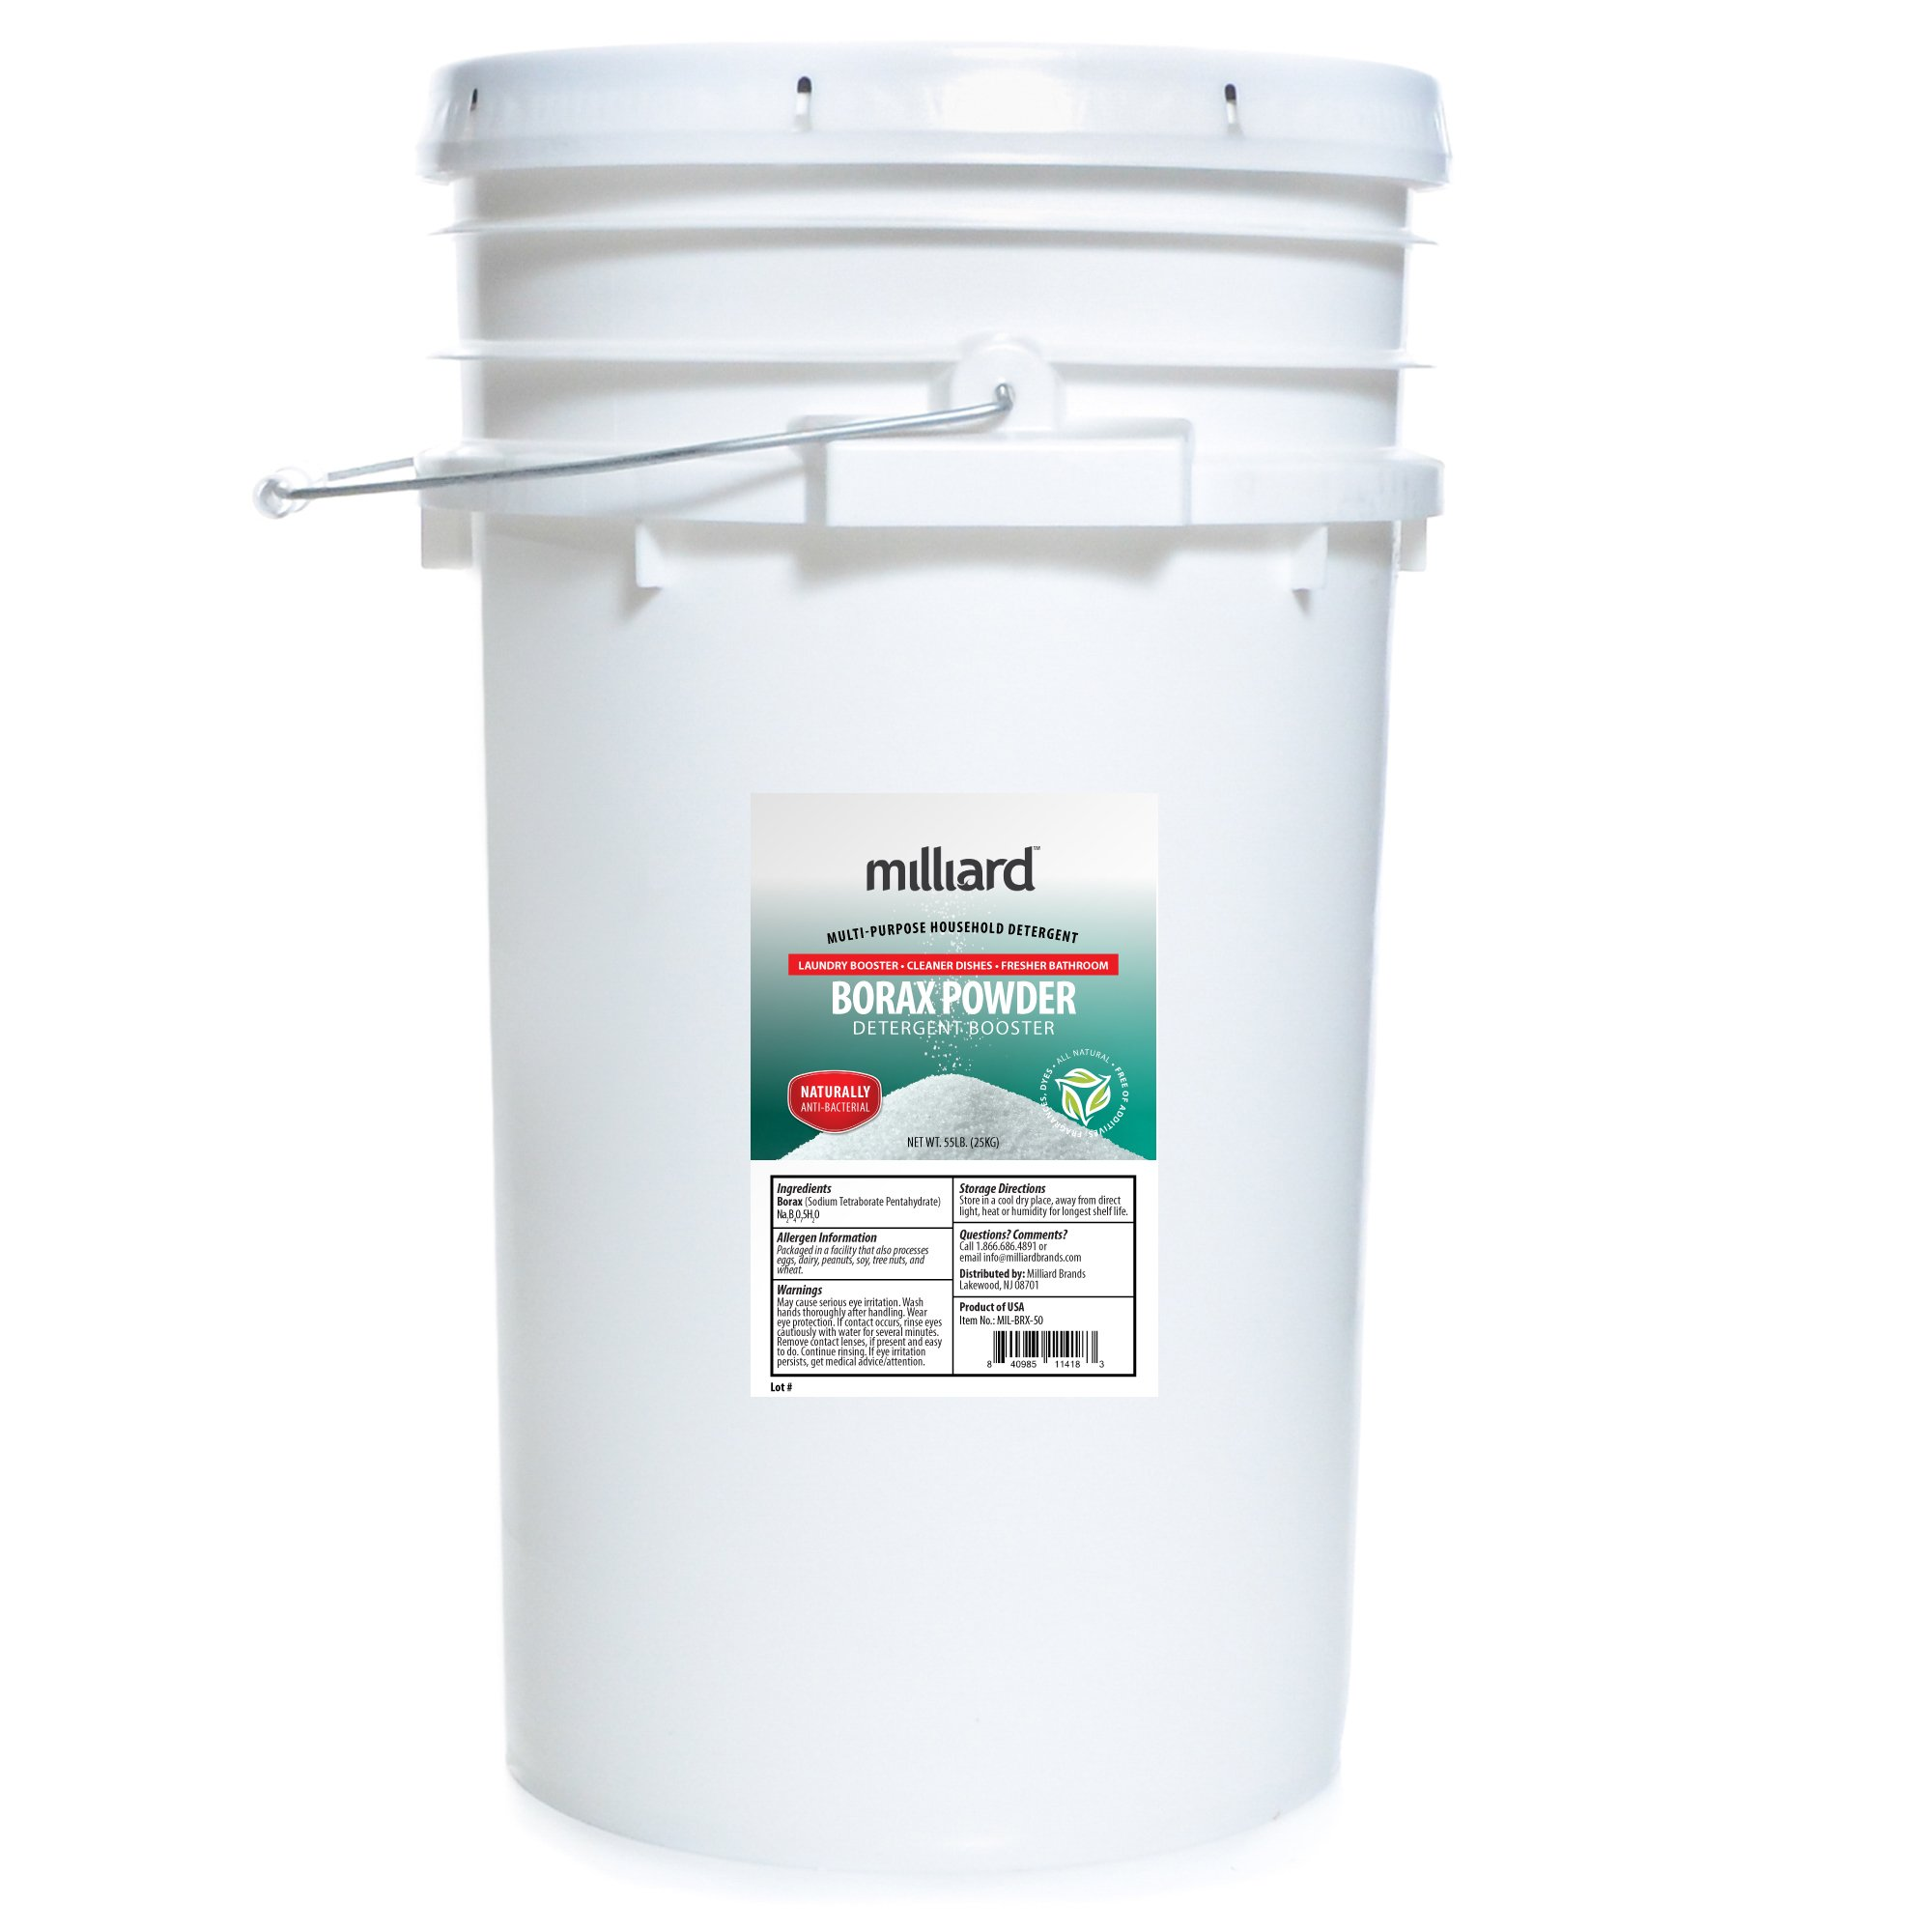 Milliard Borax Powder 55 Pound Bulk -Pure Multi-Purpose Cleaner, Comes in a Re-sealable Plastic Pail (55 POUNDS) by Milliard